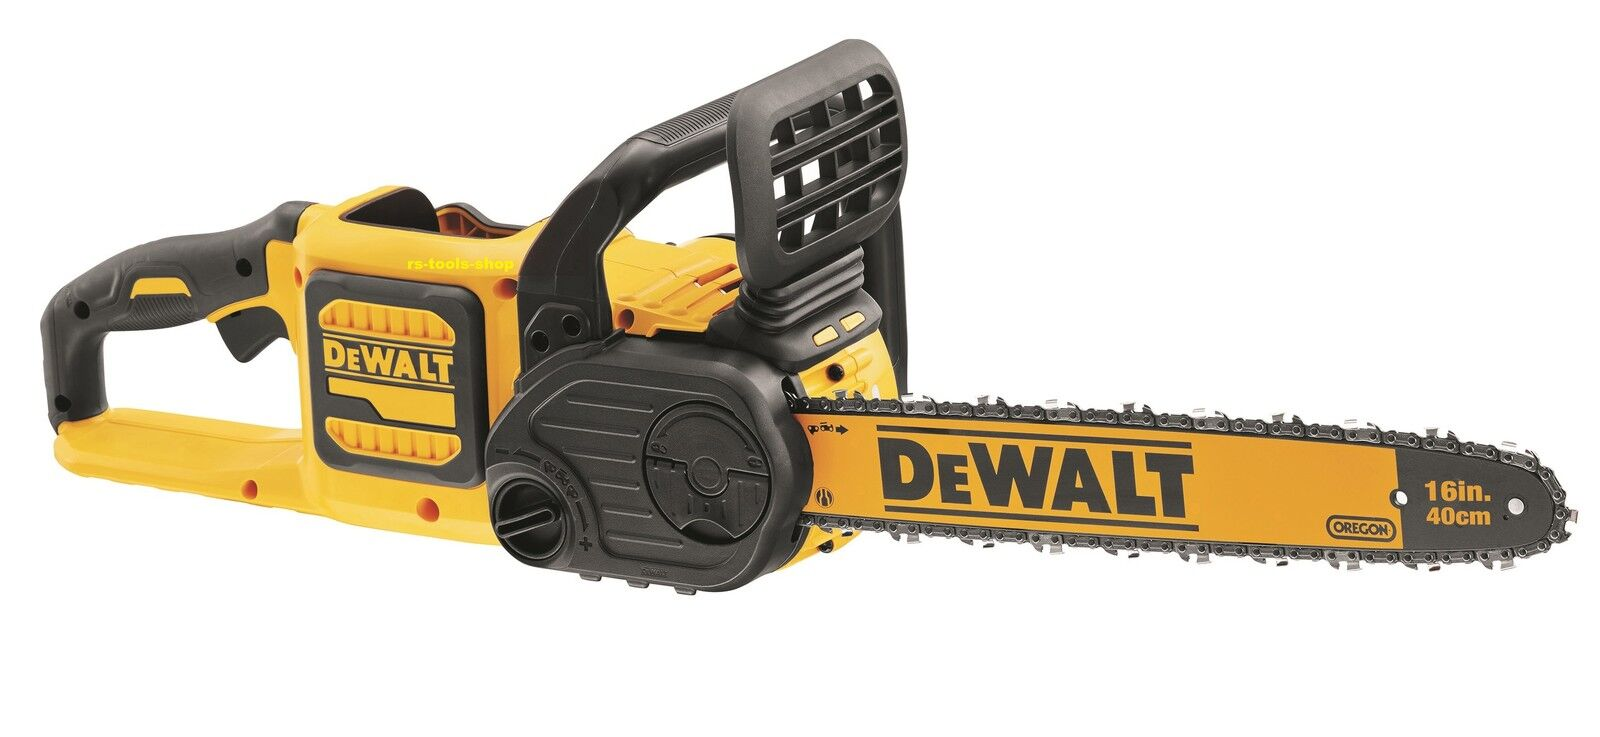 dewalt dcm575n 54v flexvolt akku kettens ge 40cm optional dcm575x1 erh ltlich eur 292 90. Black Bedroom Furniture Sets. Home Design Ideas